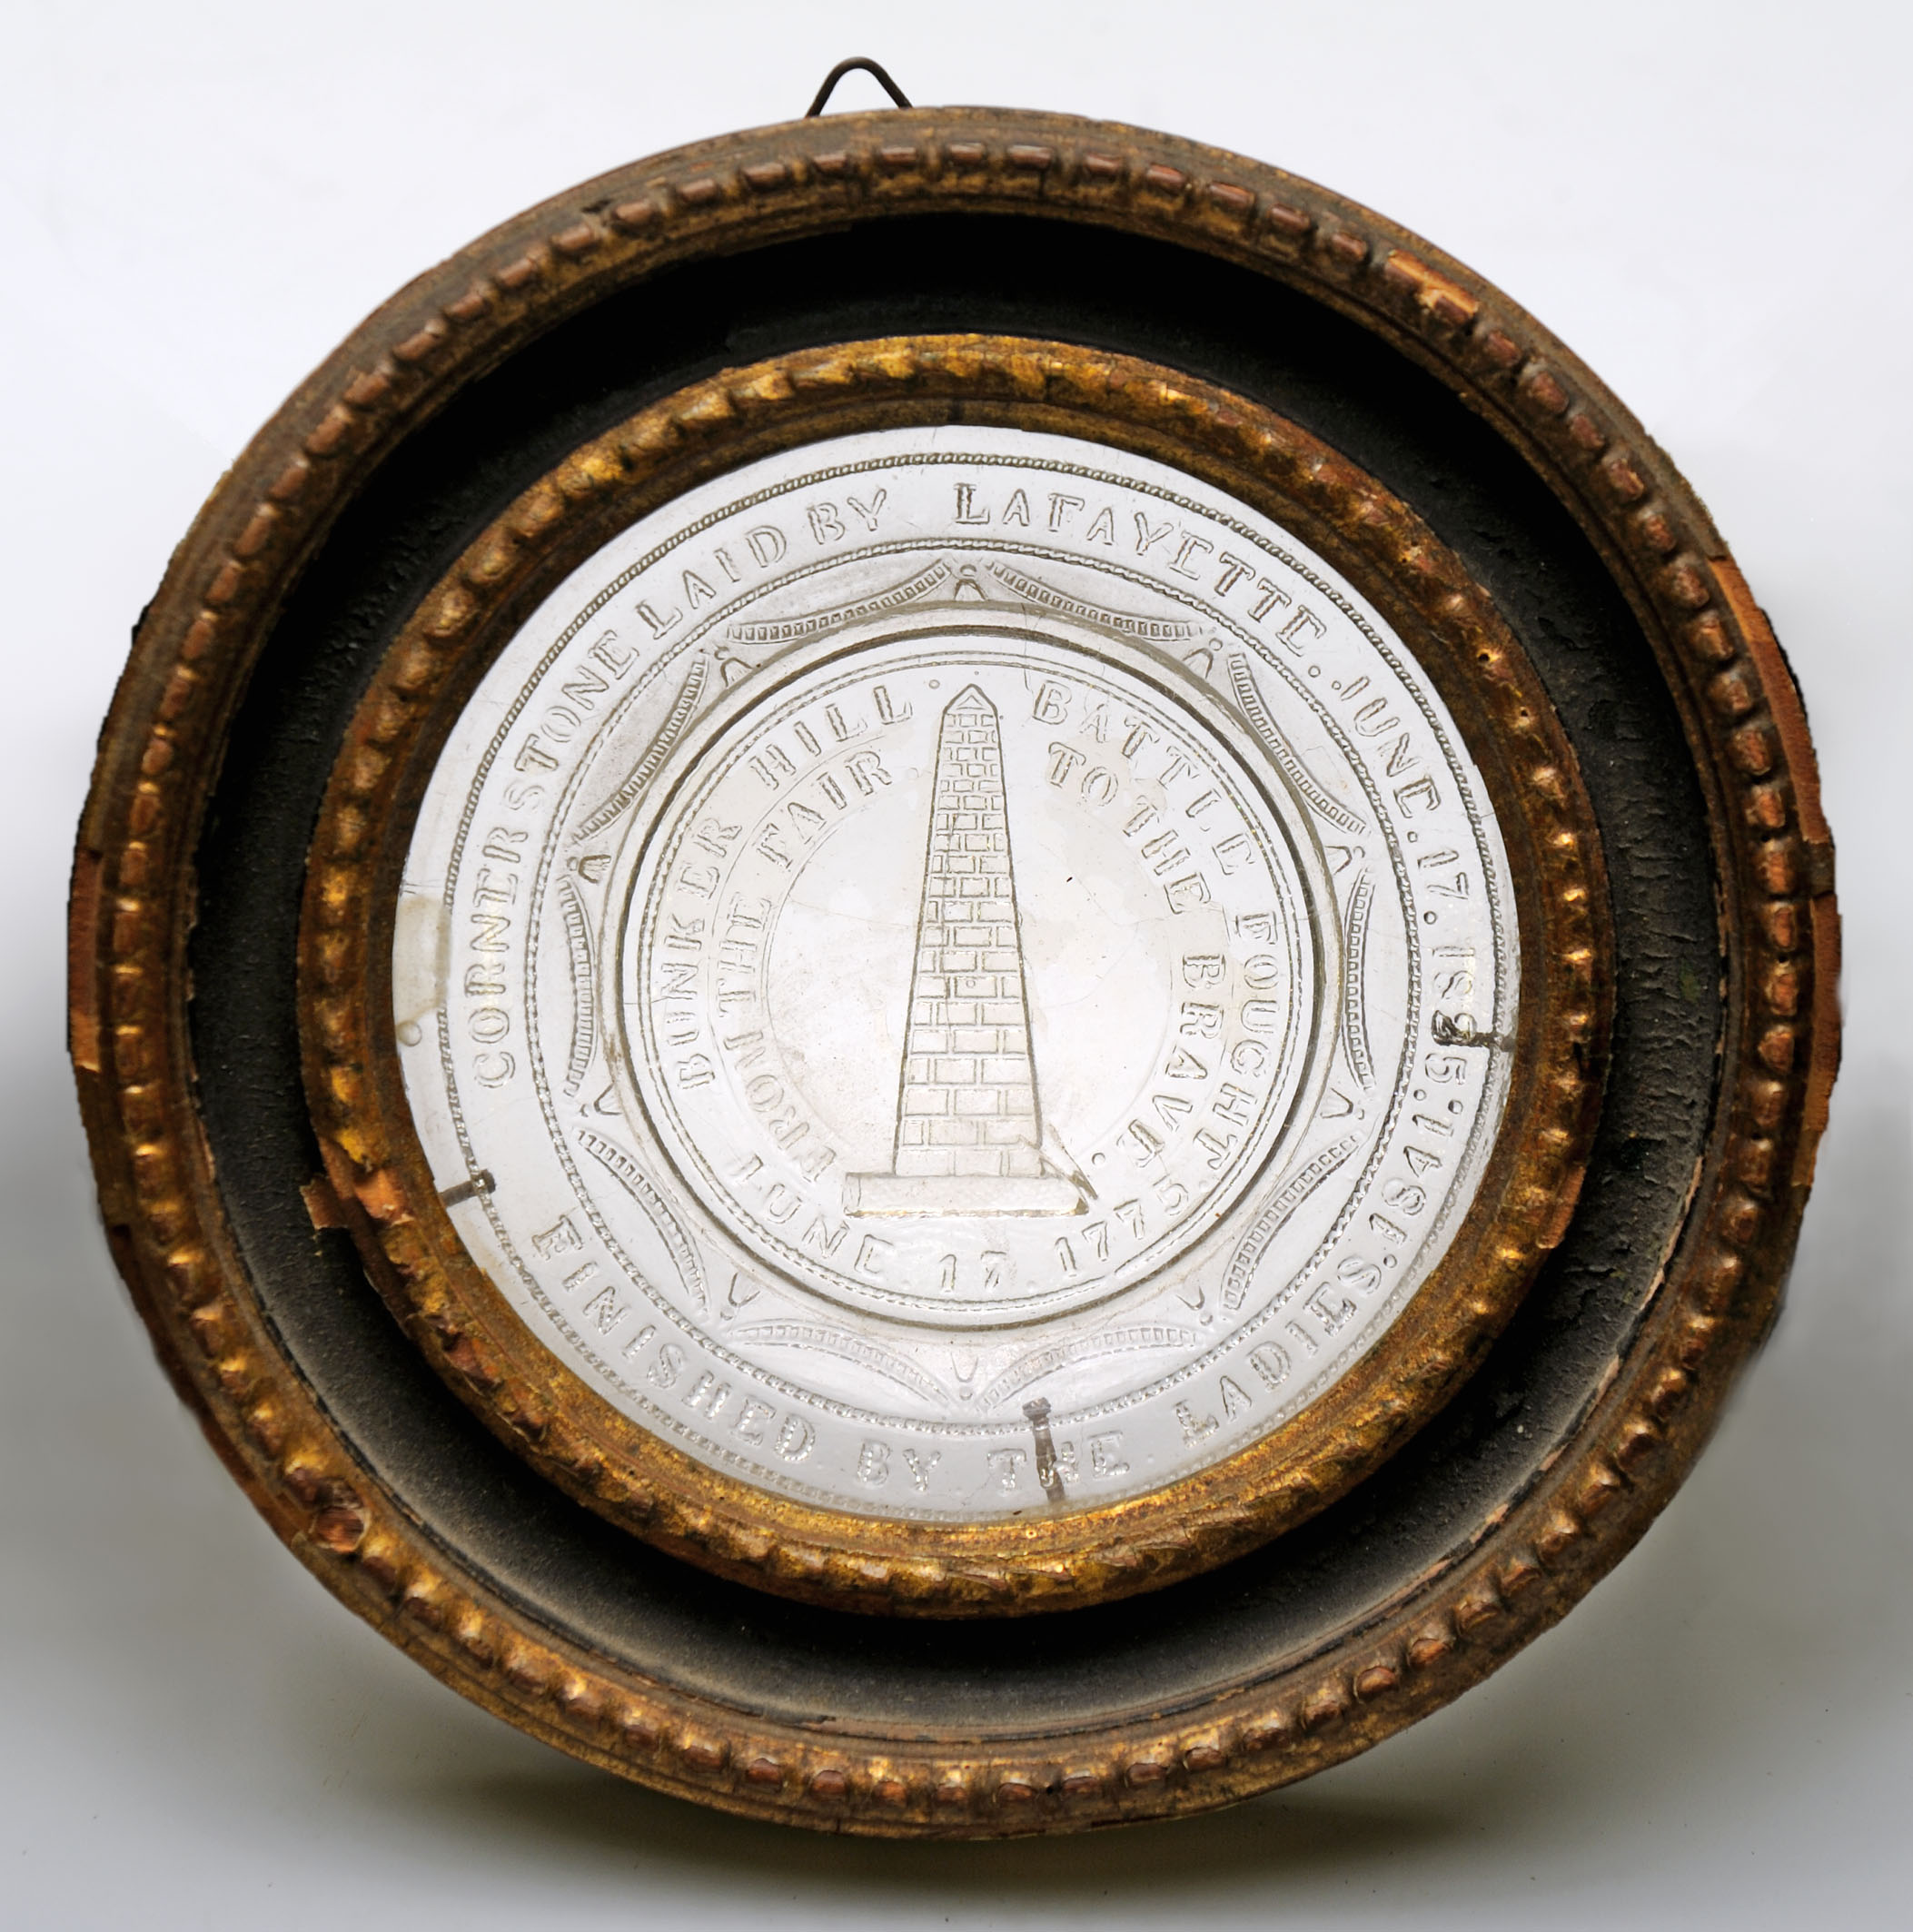 Bunker Hill monument cup plate, ca. 1841